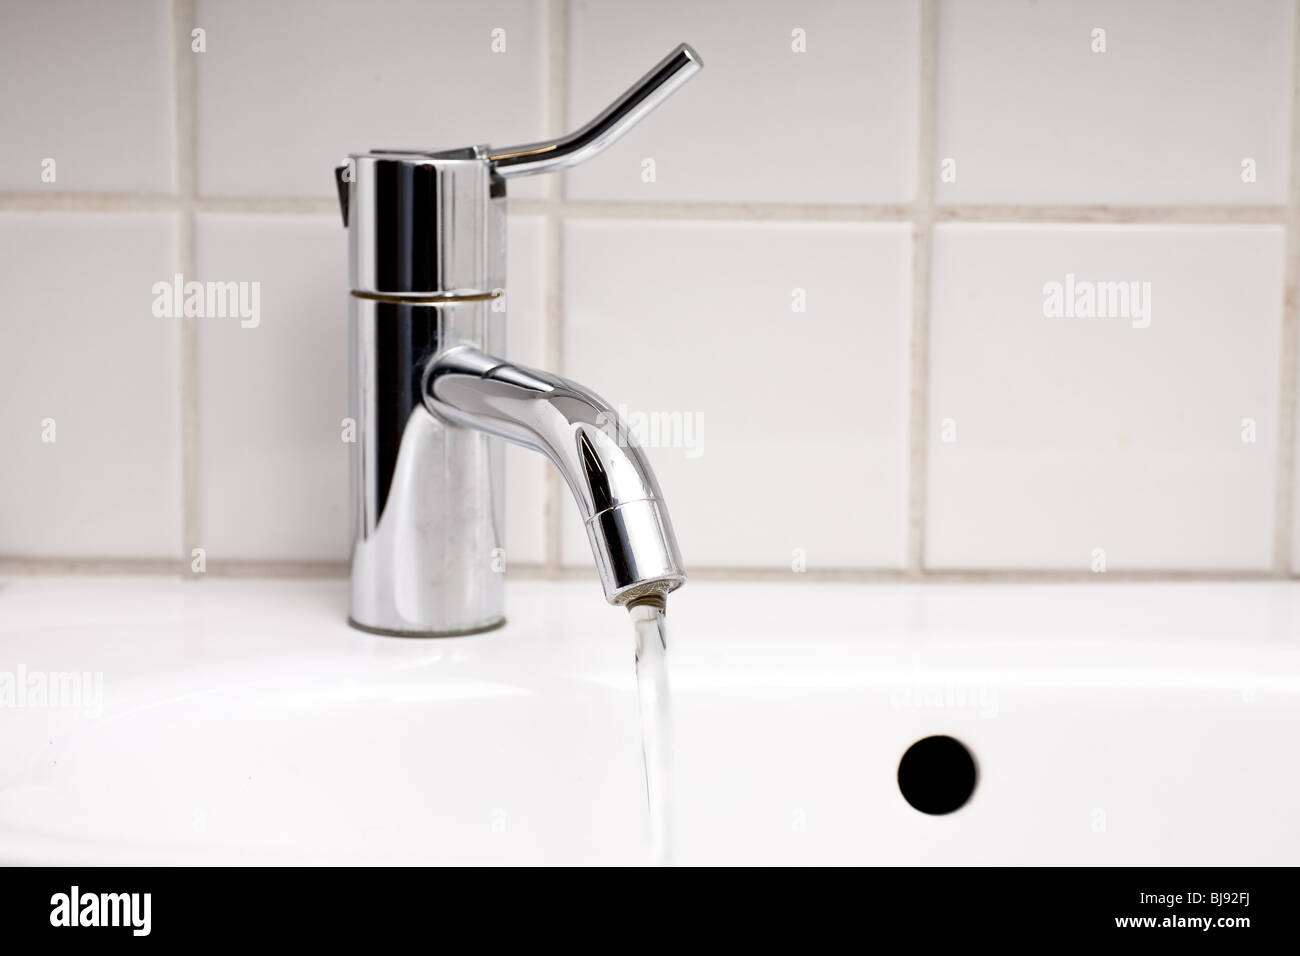 close up of sink and tap with running water in bathroom - Stock Image